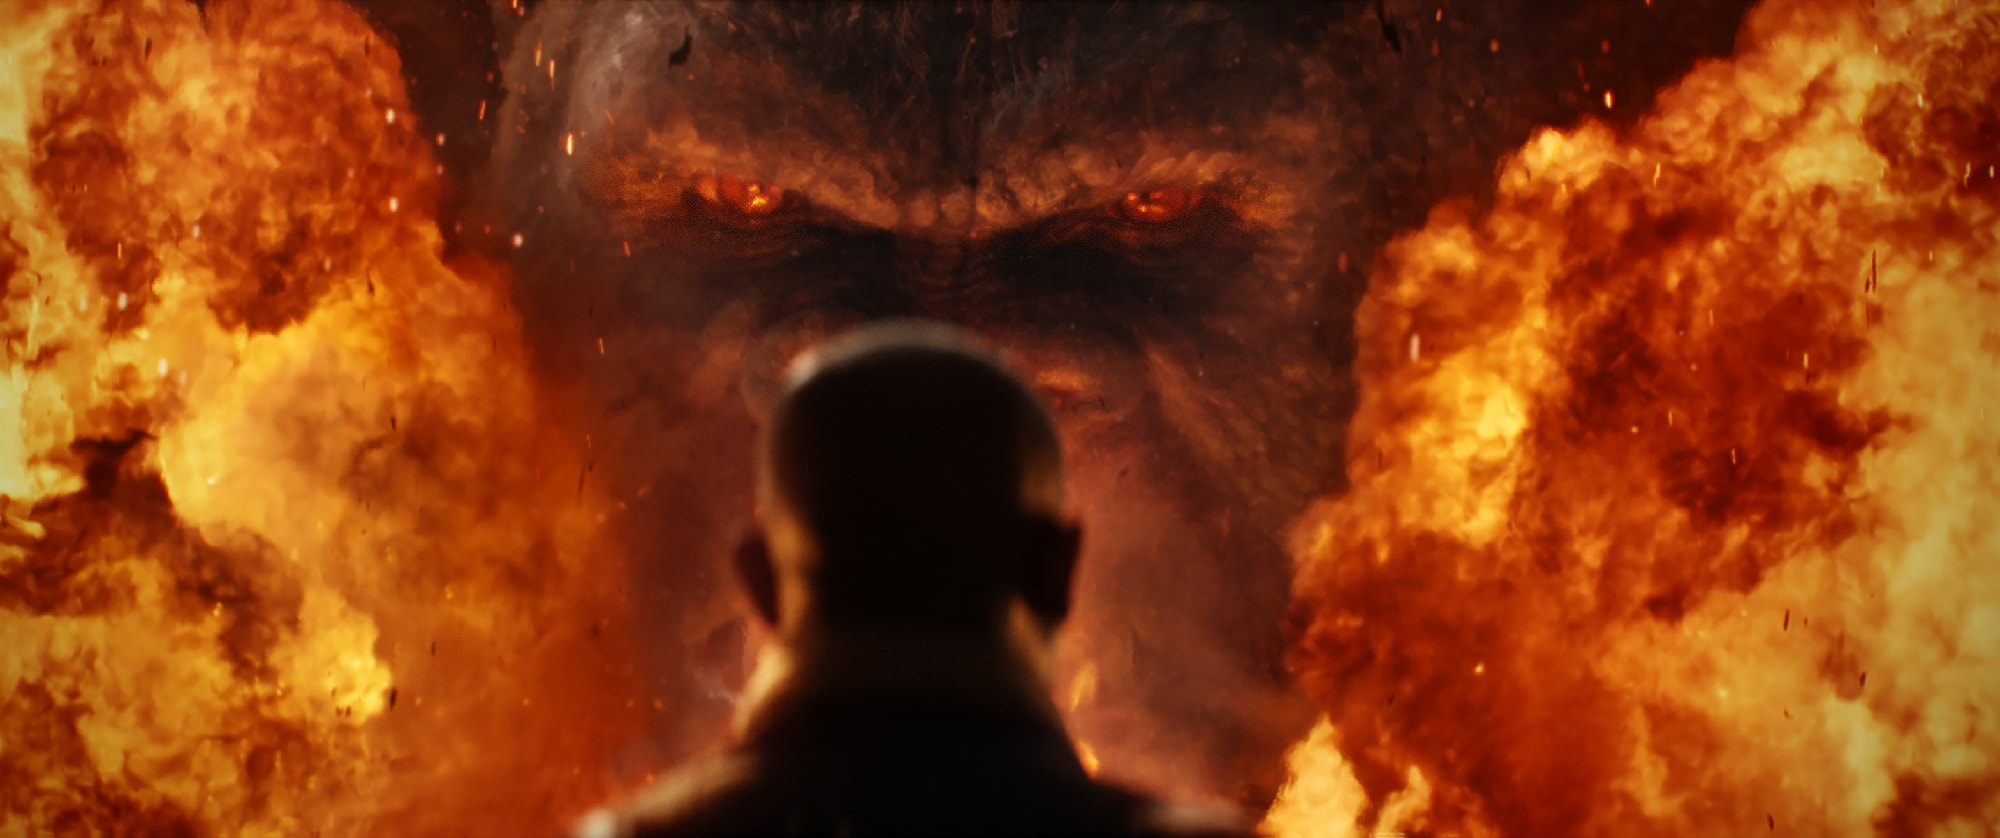 ILM creatures on Kong's Skull Island | fxguide